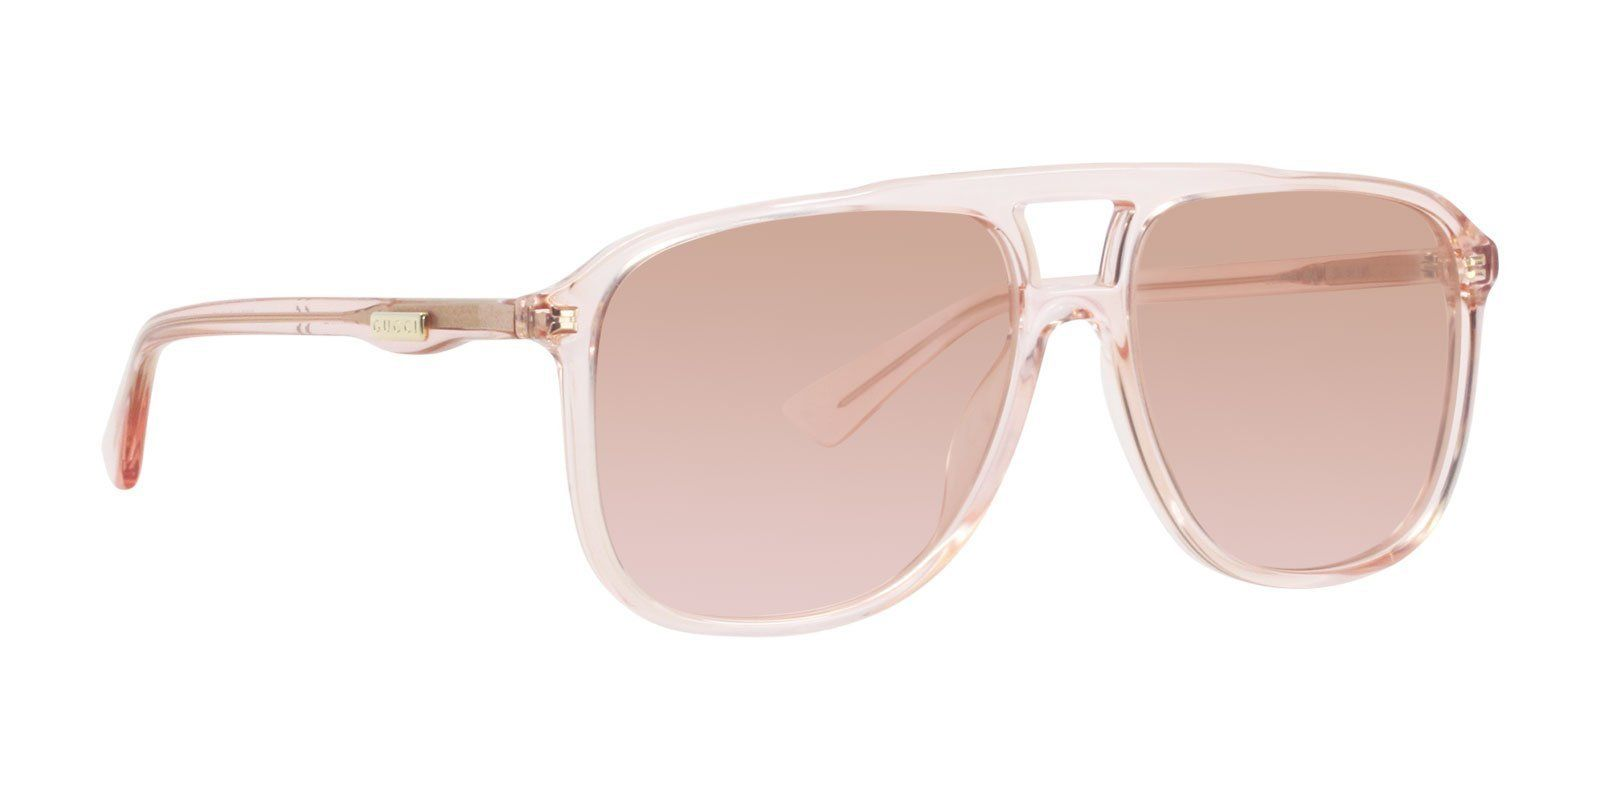 167c9399b9 Gucci - GG0262S 004-sunglasses-Designer Eyes